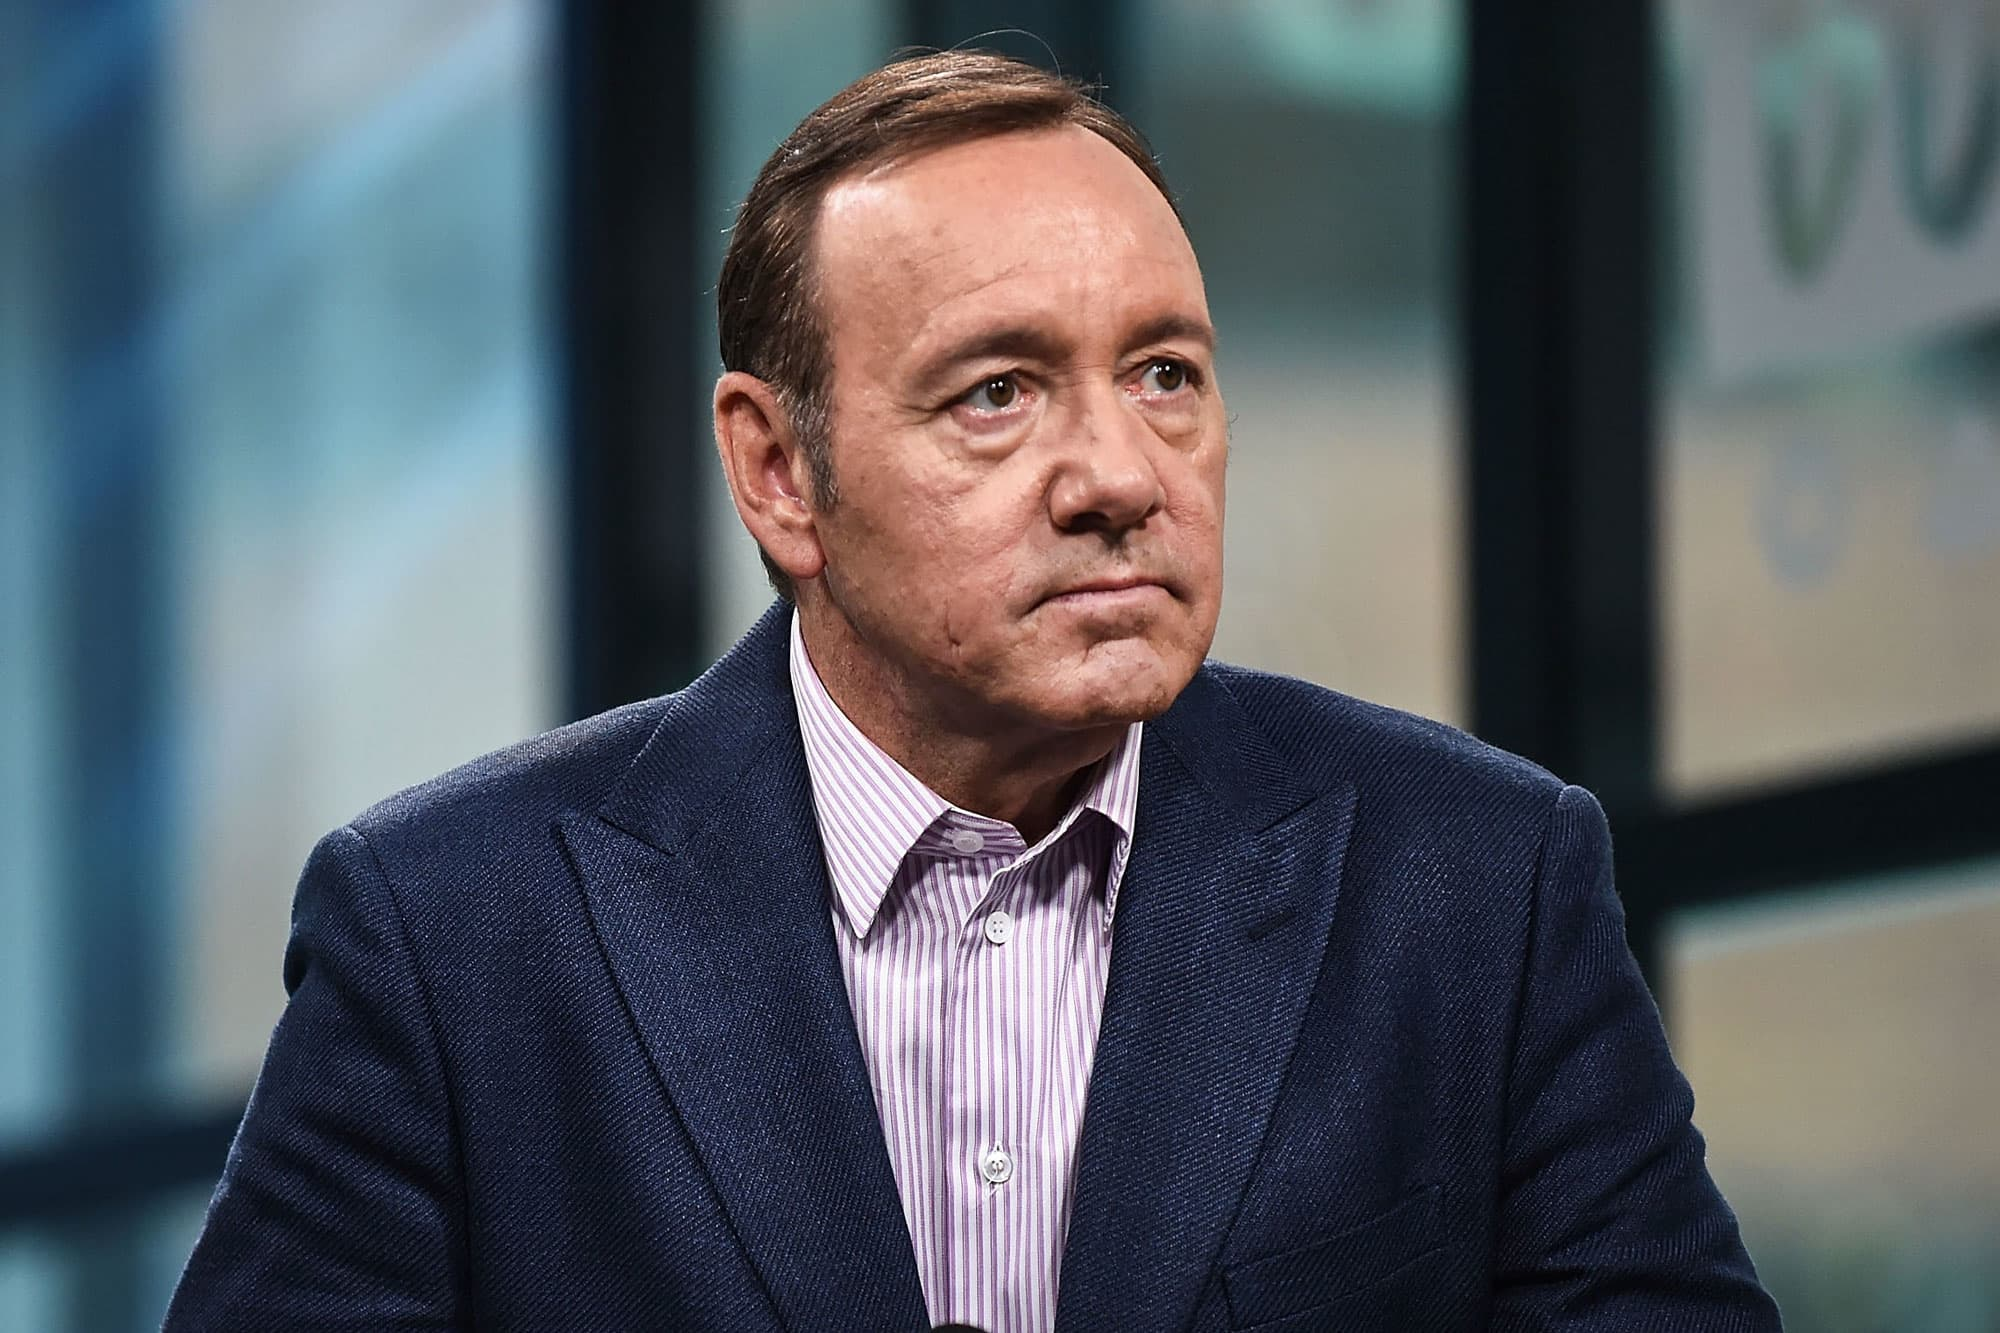 Prosecutors drop groping case against actor Kevin Spacey after accuser becomes unavailable